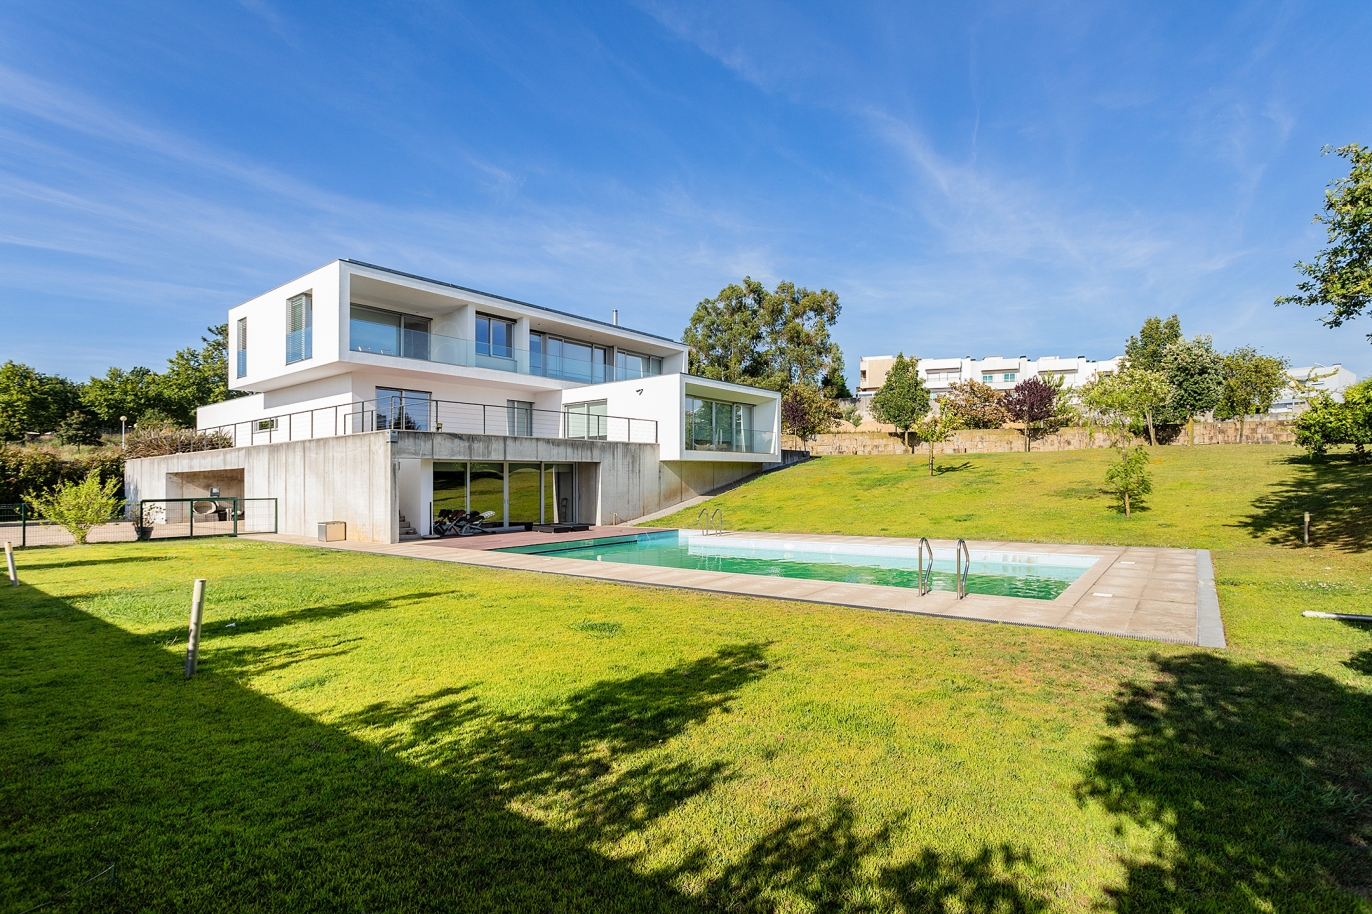 luxury-villa-with-garden-and-pool-for-sale-in-maia-portugal